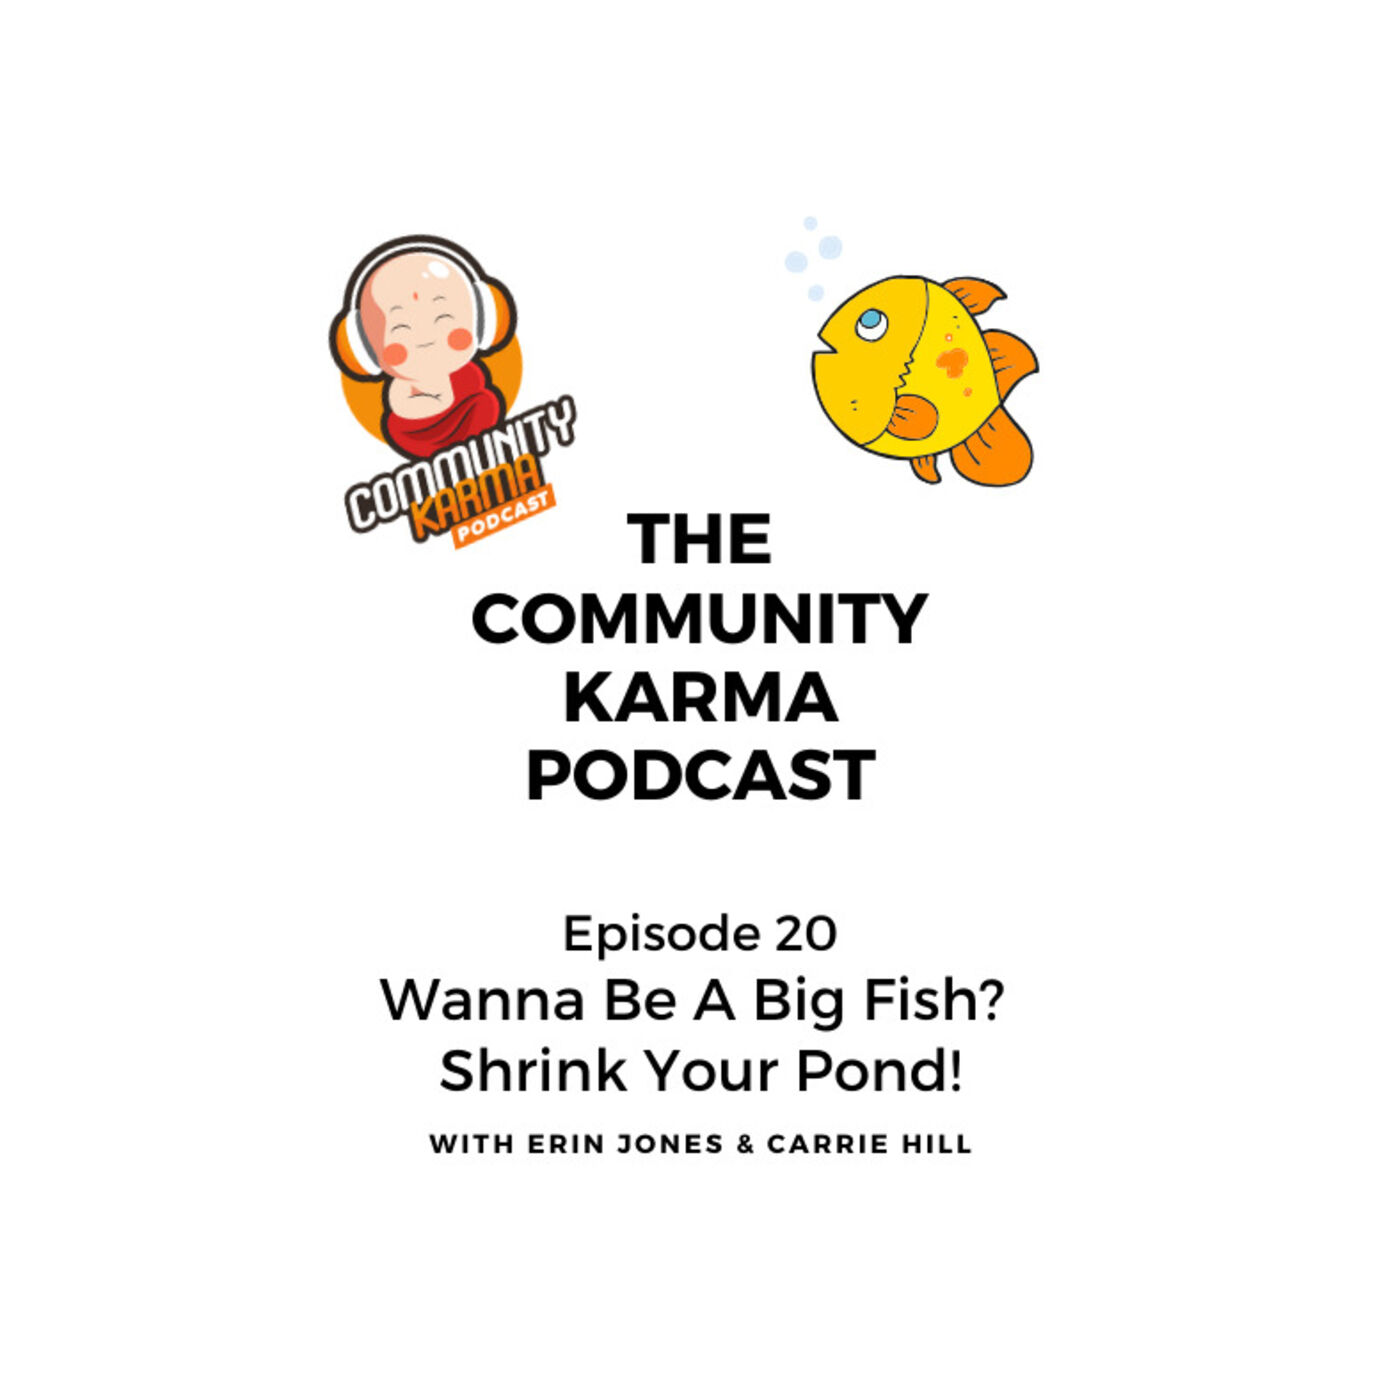 Episode 20: Wanna be a big fish? Shrink your pond